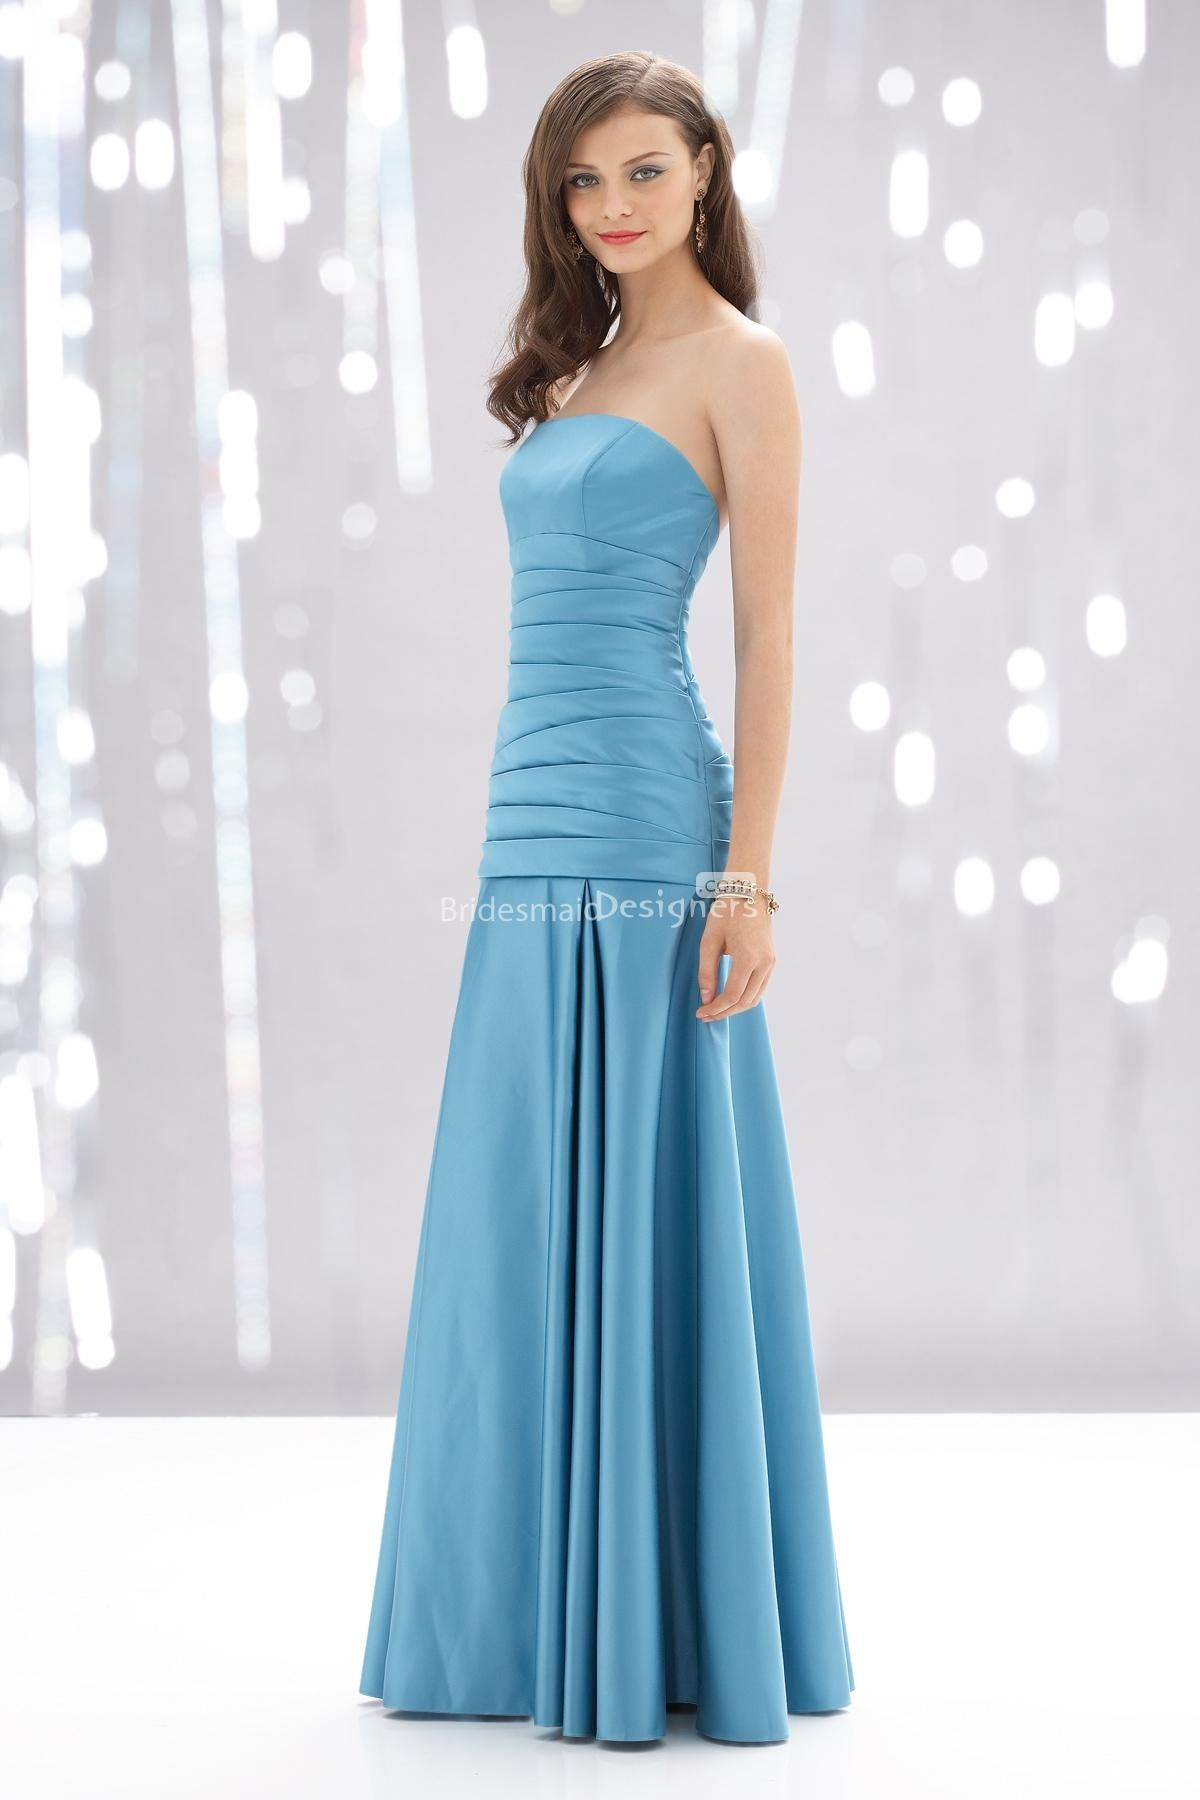 Modest blue strapless pleated a line long satin bridesmaid dress modest blue strapless pleated a line long satin bridesmaid dress us 38400 off ombrellifo Choice Image